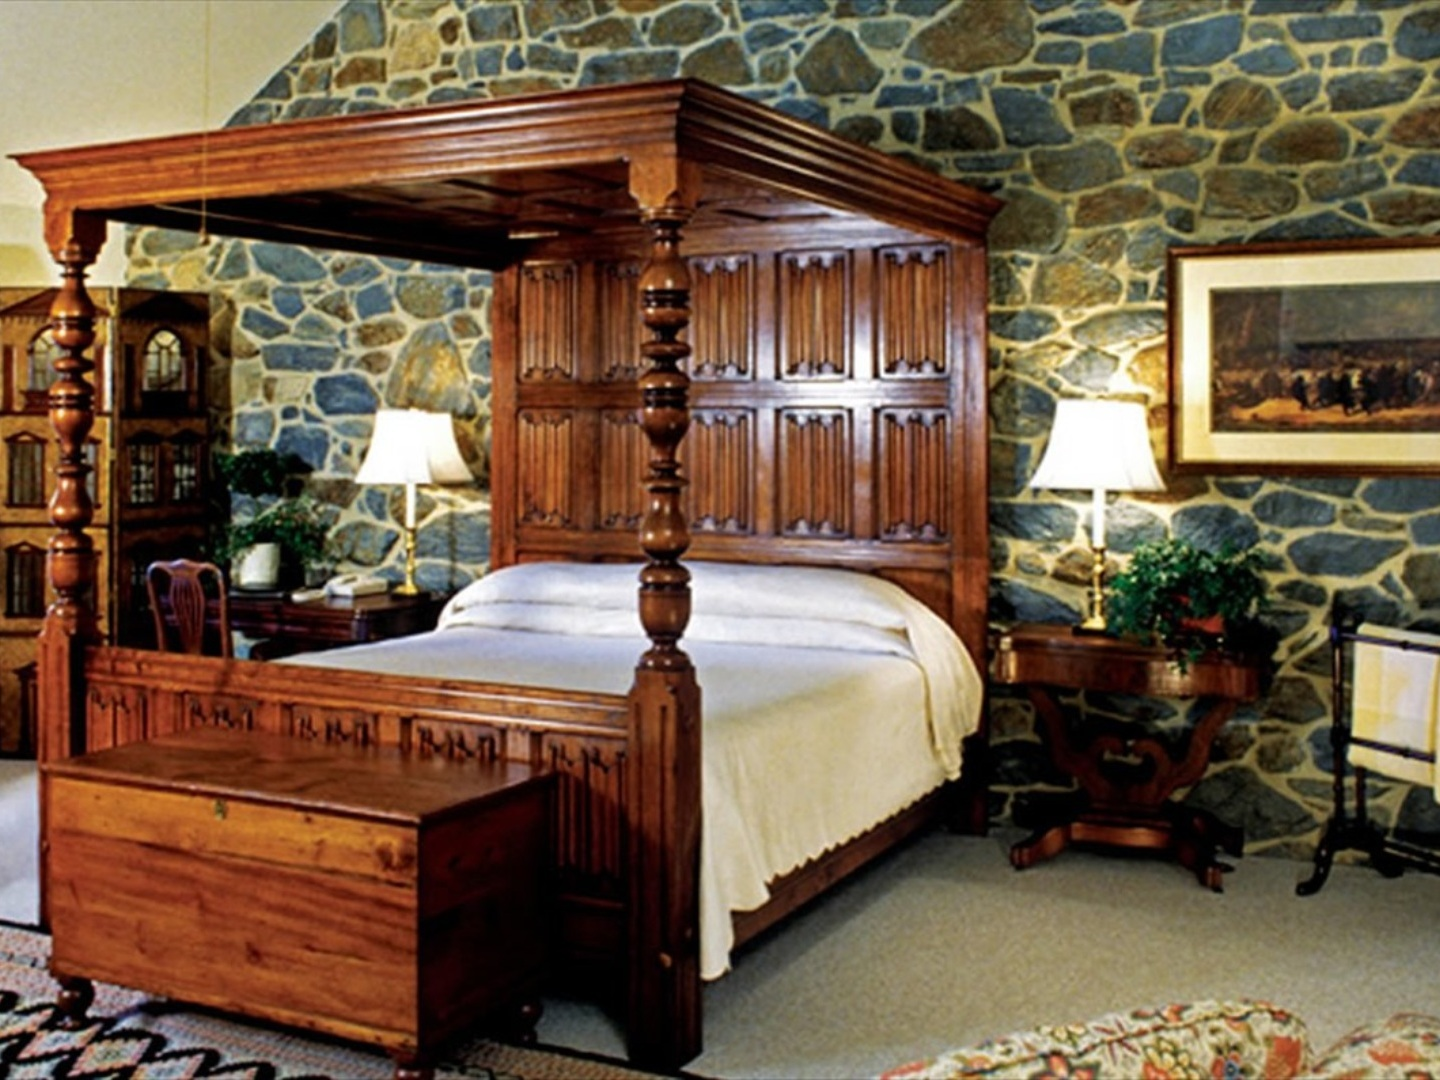 A bedroom with a bed and desk in a room at Inn at Montchanin Village & Spa.